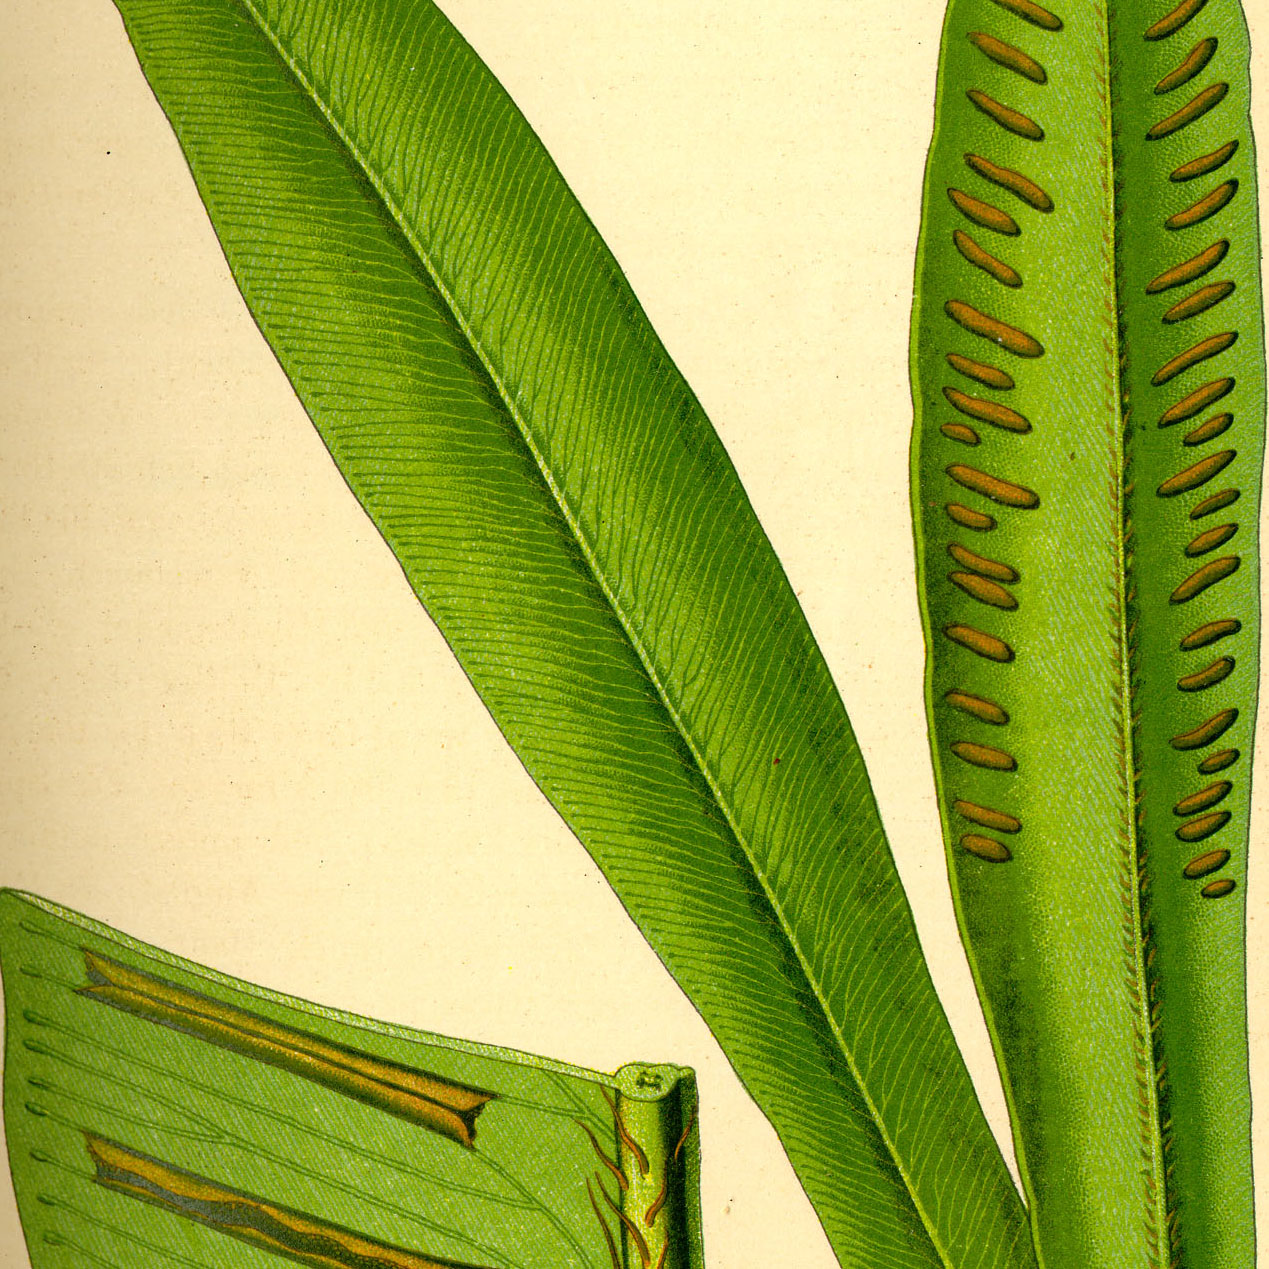 Hart's tongue fern organic cut - 1000g